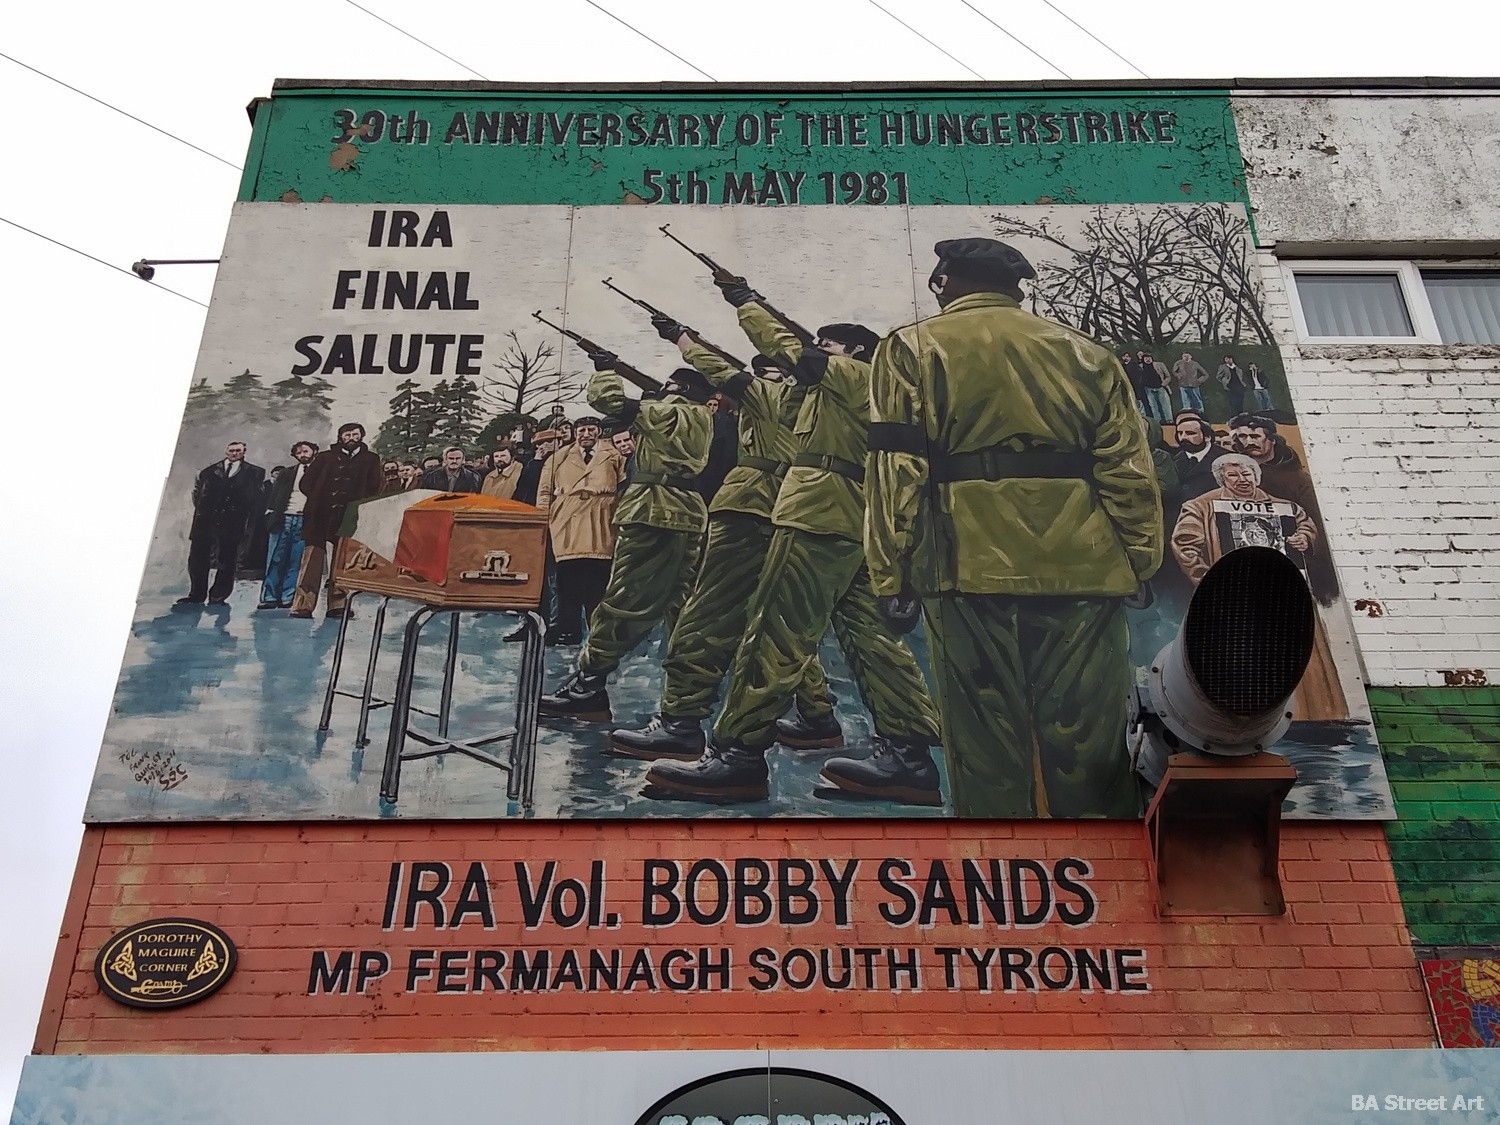 Bobby Sands IRA mural final salute mural may 1981 south tyrone